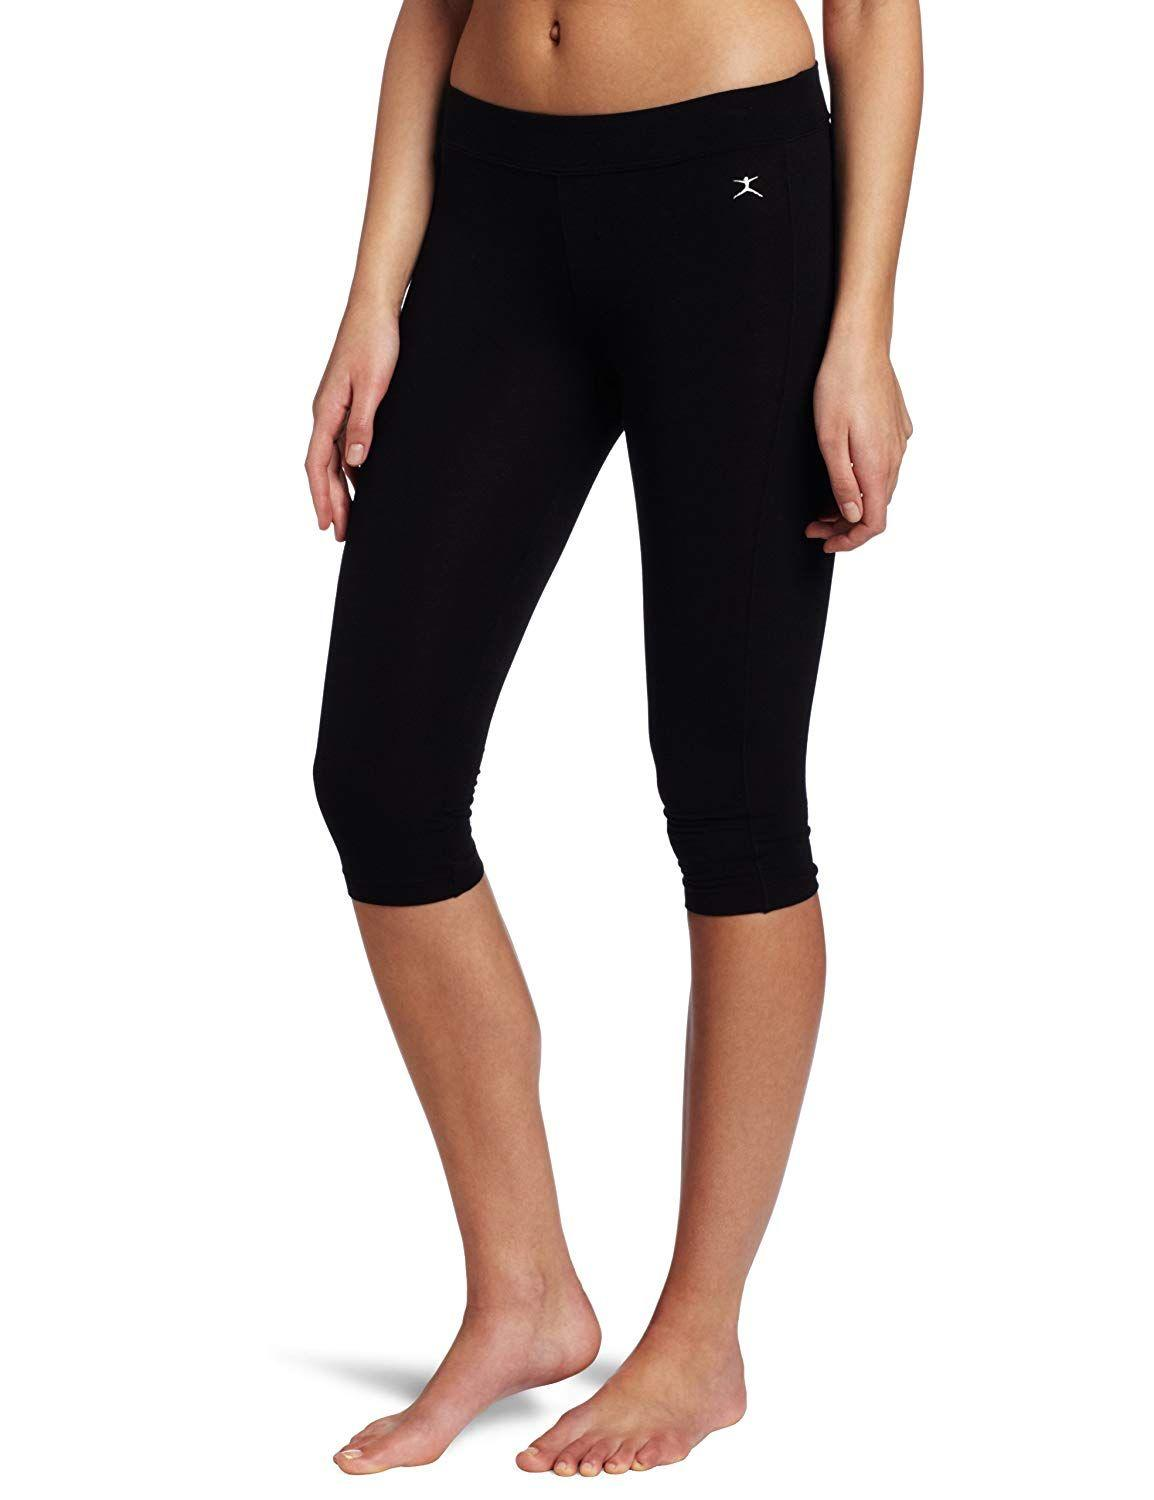 """<h3><a href=""""https://www.amazon.com/Danskin-Womens-Capri-Legging-Midnight/dp/B015RFBATM"""" rel=""""nofollow noopener"""" target=""""_blank"""" data-ylk=""""slk:Danskin Capri Legging"""" class=""""link rapid-noclick-resp"""">Danskin Capri Legging</a></h3> <p>3.9 out of 5 stars and 359 reviews</p> <p><strong>Promising Review:</strong> If it's durability you're concerned about, you can trust Danskin's capri leggings will hold up under some extreme circumstances. <a href=""""https://www.amazon.com/gp/customer-reviews/R2HF1CD9I4UPK4"""" rel=""""nofollow noopener"""" target=""""_blank"""" data-ylk=""""slk:One user"""" class=""""link rapid-noclick-resp"""">One user</a> praised the leggings saying, """"I have several pairs of these and absolutely love them. I'm a dog walker, so I need something very comfortable while I'm out working. I also fell, recently, and skinned my knee; there was no damage to the fabric!""""</p> <br> <br> <strong>Danskin</strong> Capri Legging, $13.99, available at <a href=""""https://www.amazon.com/Danskin-Womens-Capri-Legging-Midnight/dp/B015RFBATM"""" rel=""""nofollow noopener"""" target=""""_blank"""" data-ylk=""""slk:Amazon"""" class=""""link rapid-noclick-resp"""">Amazon</a>"""